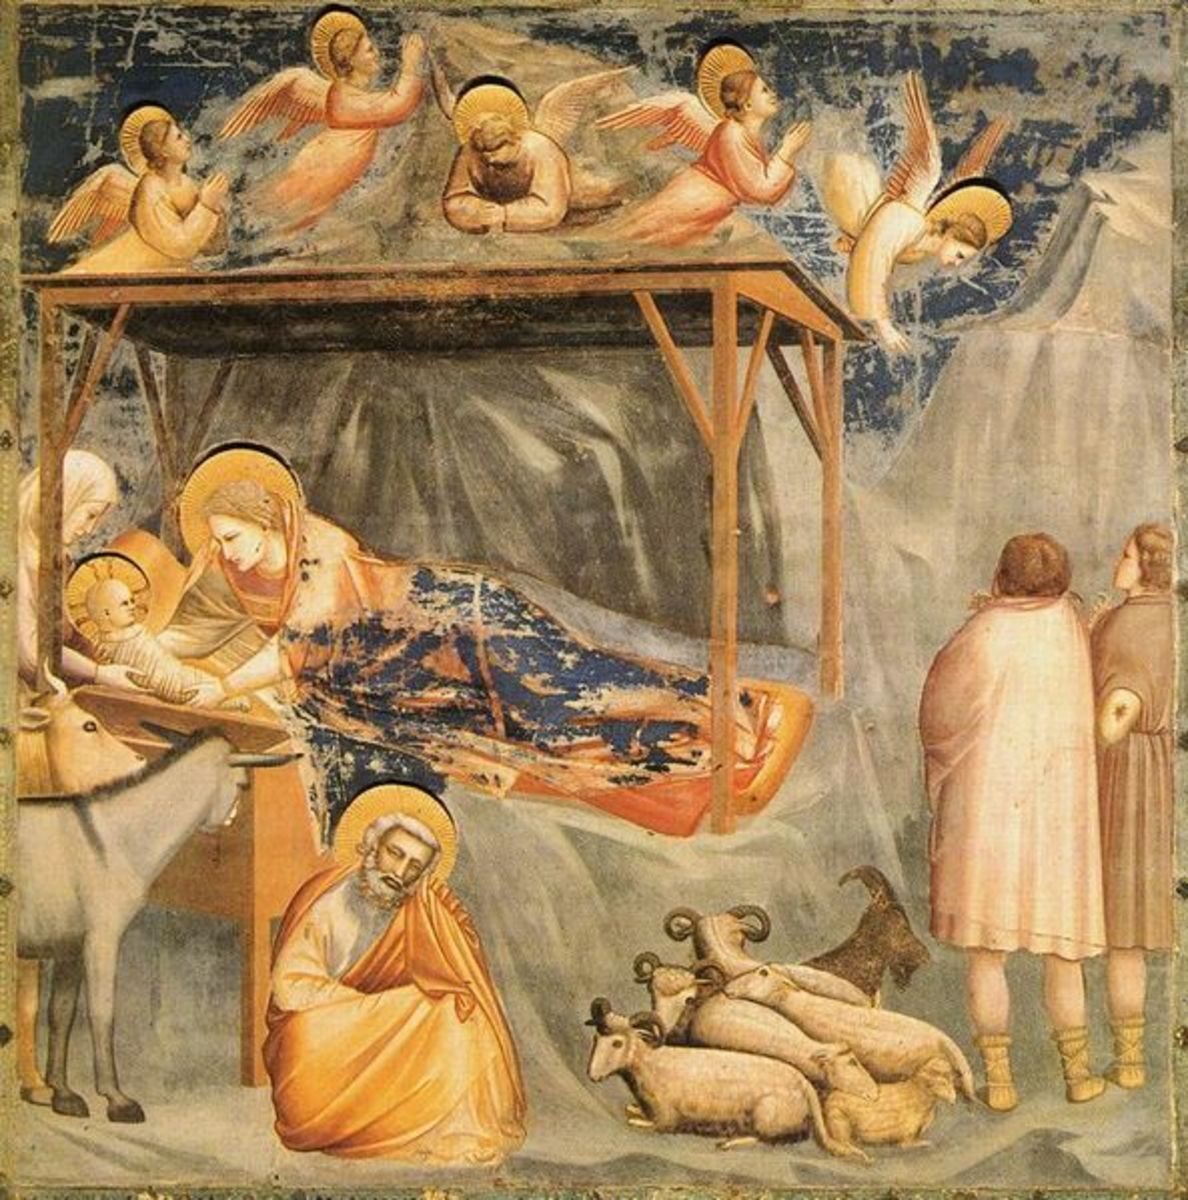 Giotto, Nativity and the Shepherds Announcement (1305), Padua Cappella degli Scrovegni